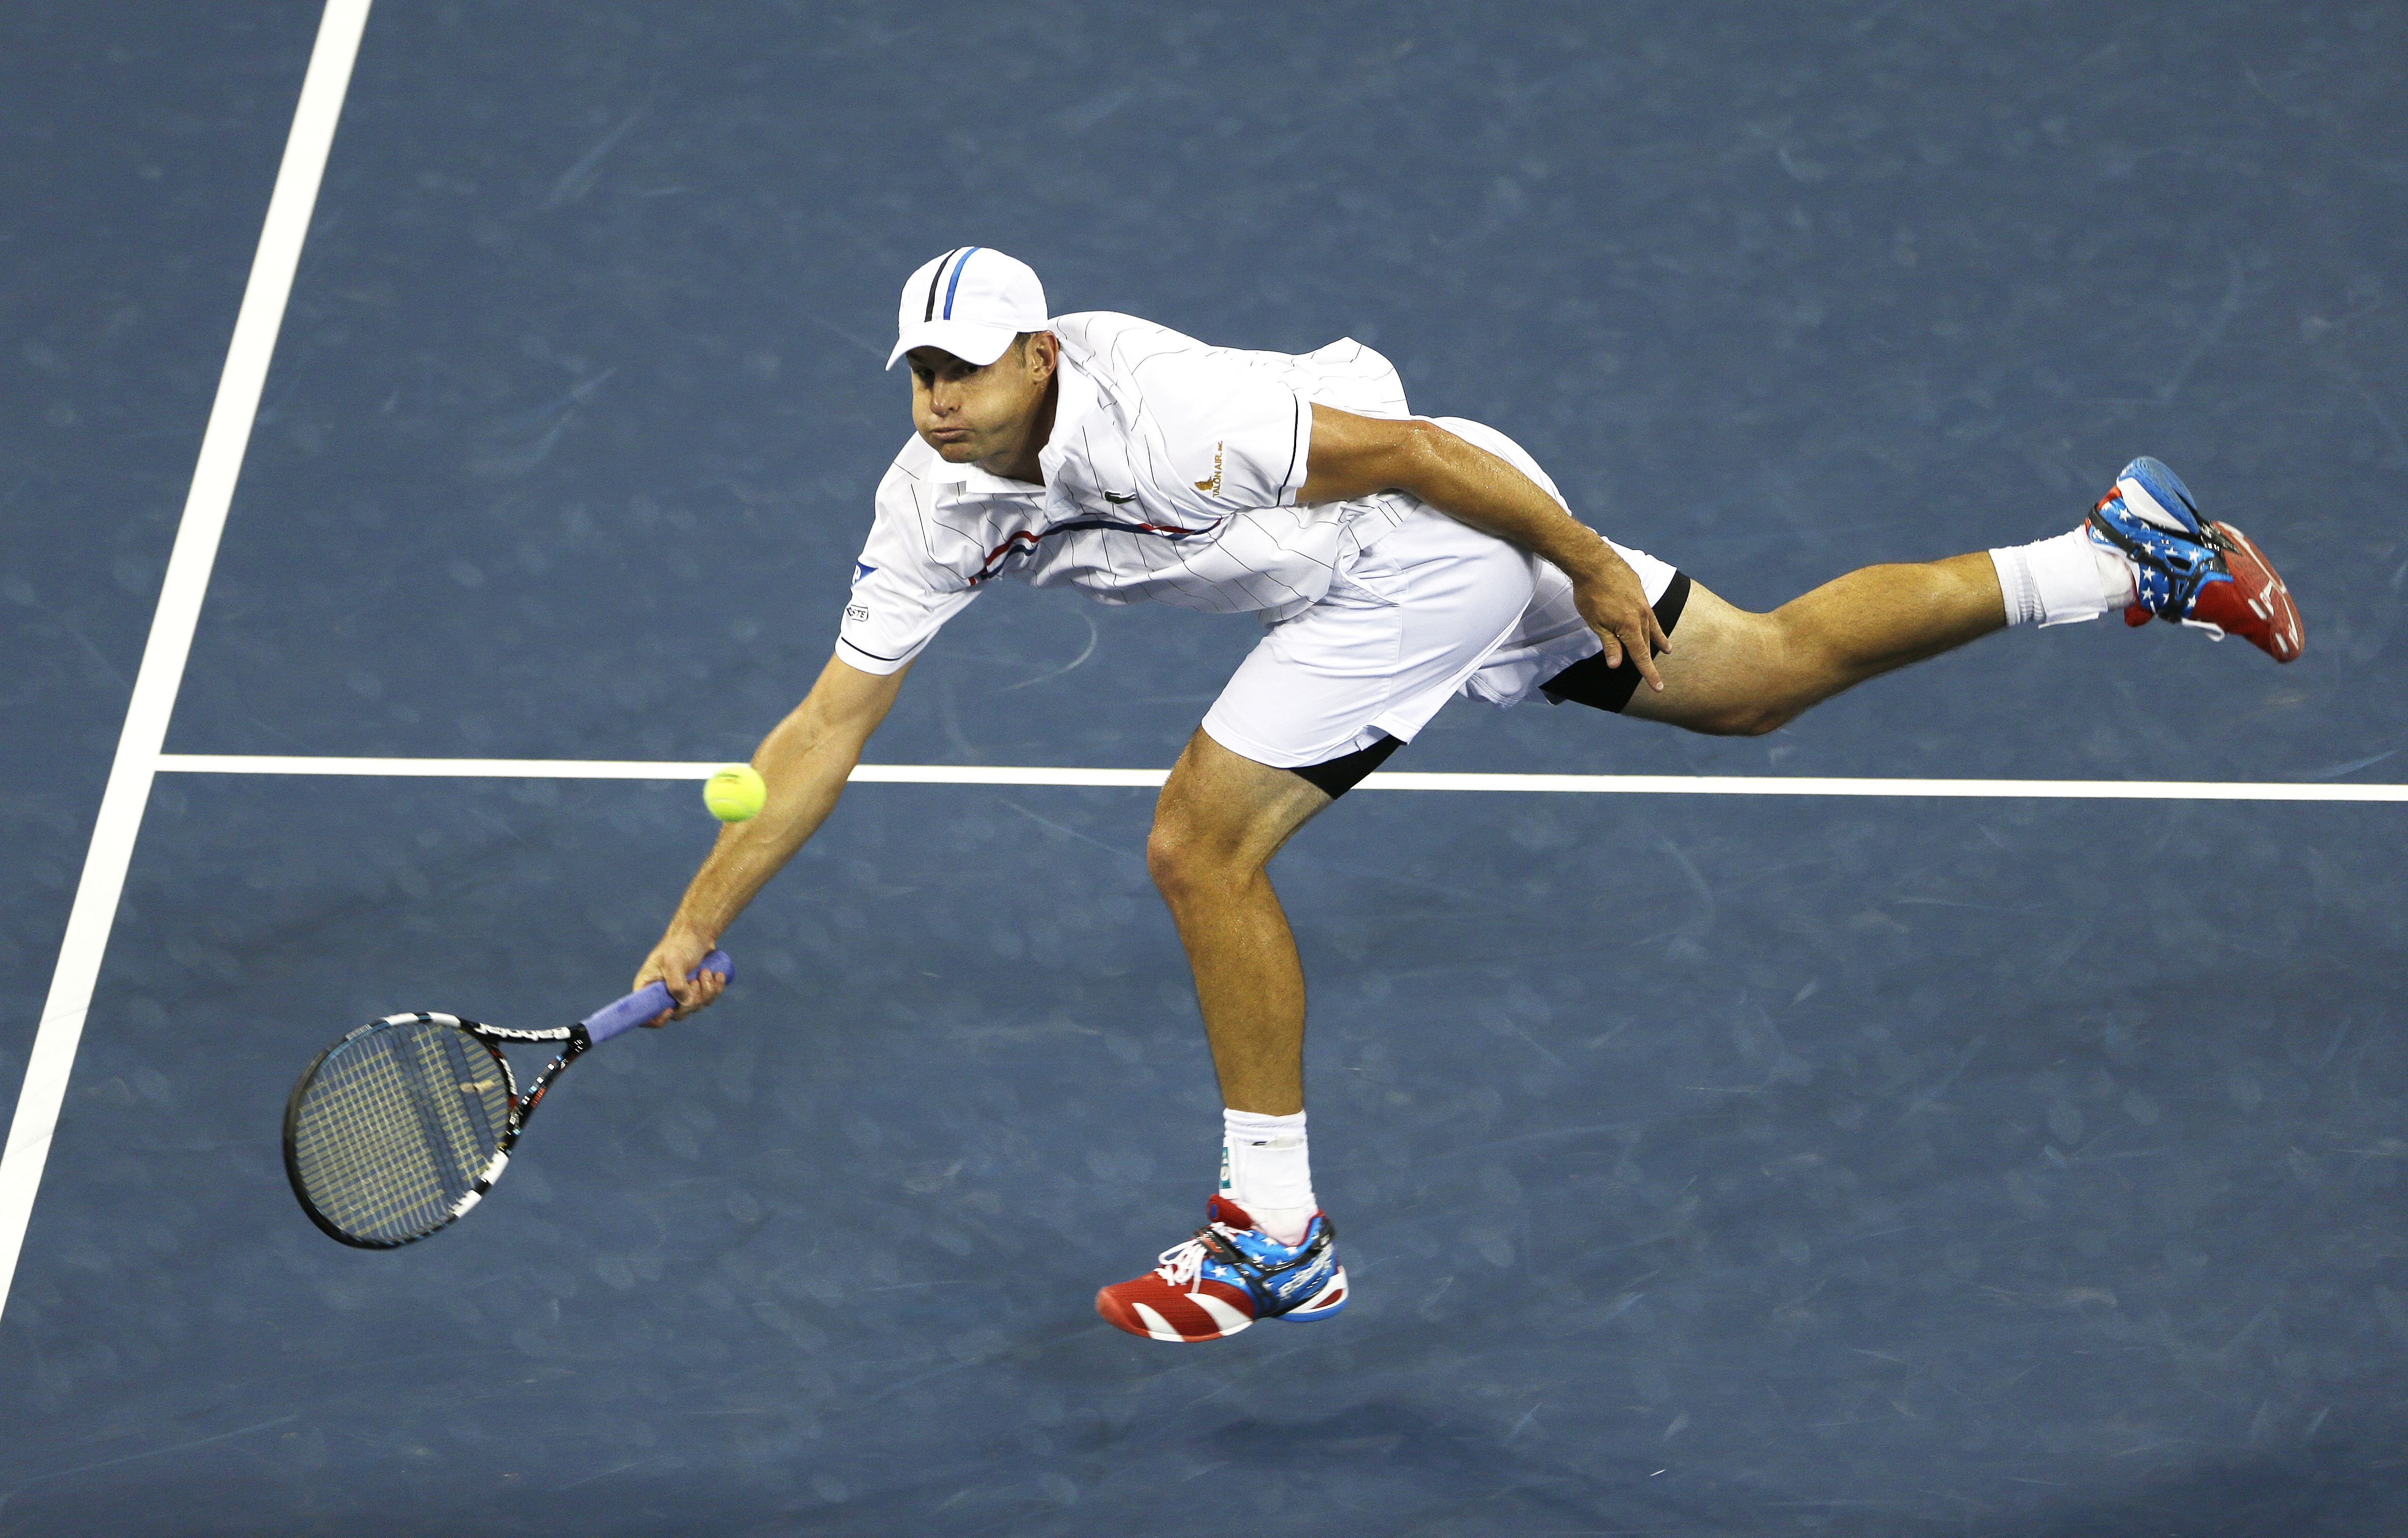 FILE - In this Aug. 31, 2012, file photo, Andy Roddick returns a shot to Australia's Bernard Tomic in the third round of play at the 2012 US Open tennis tournament in New York. Roddick and Kim Clijsters have been elected to the International Tennis Hall o